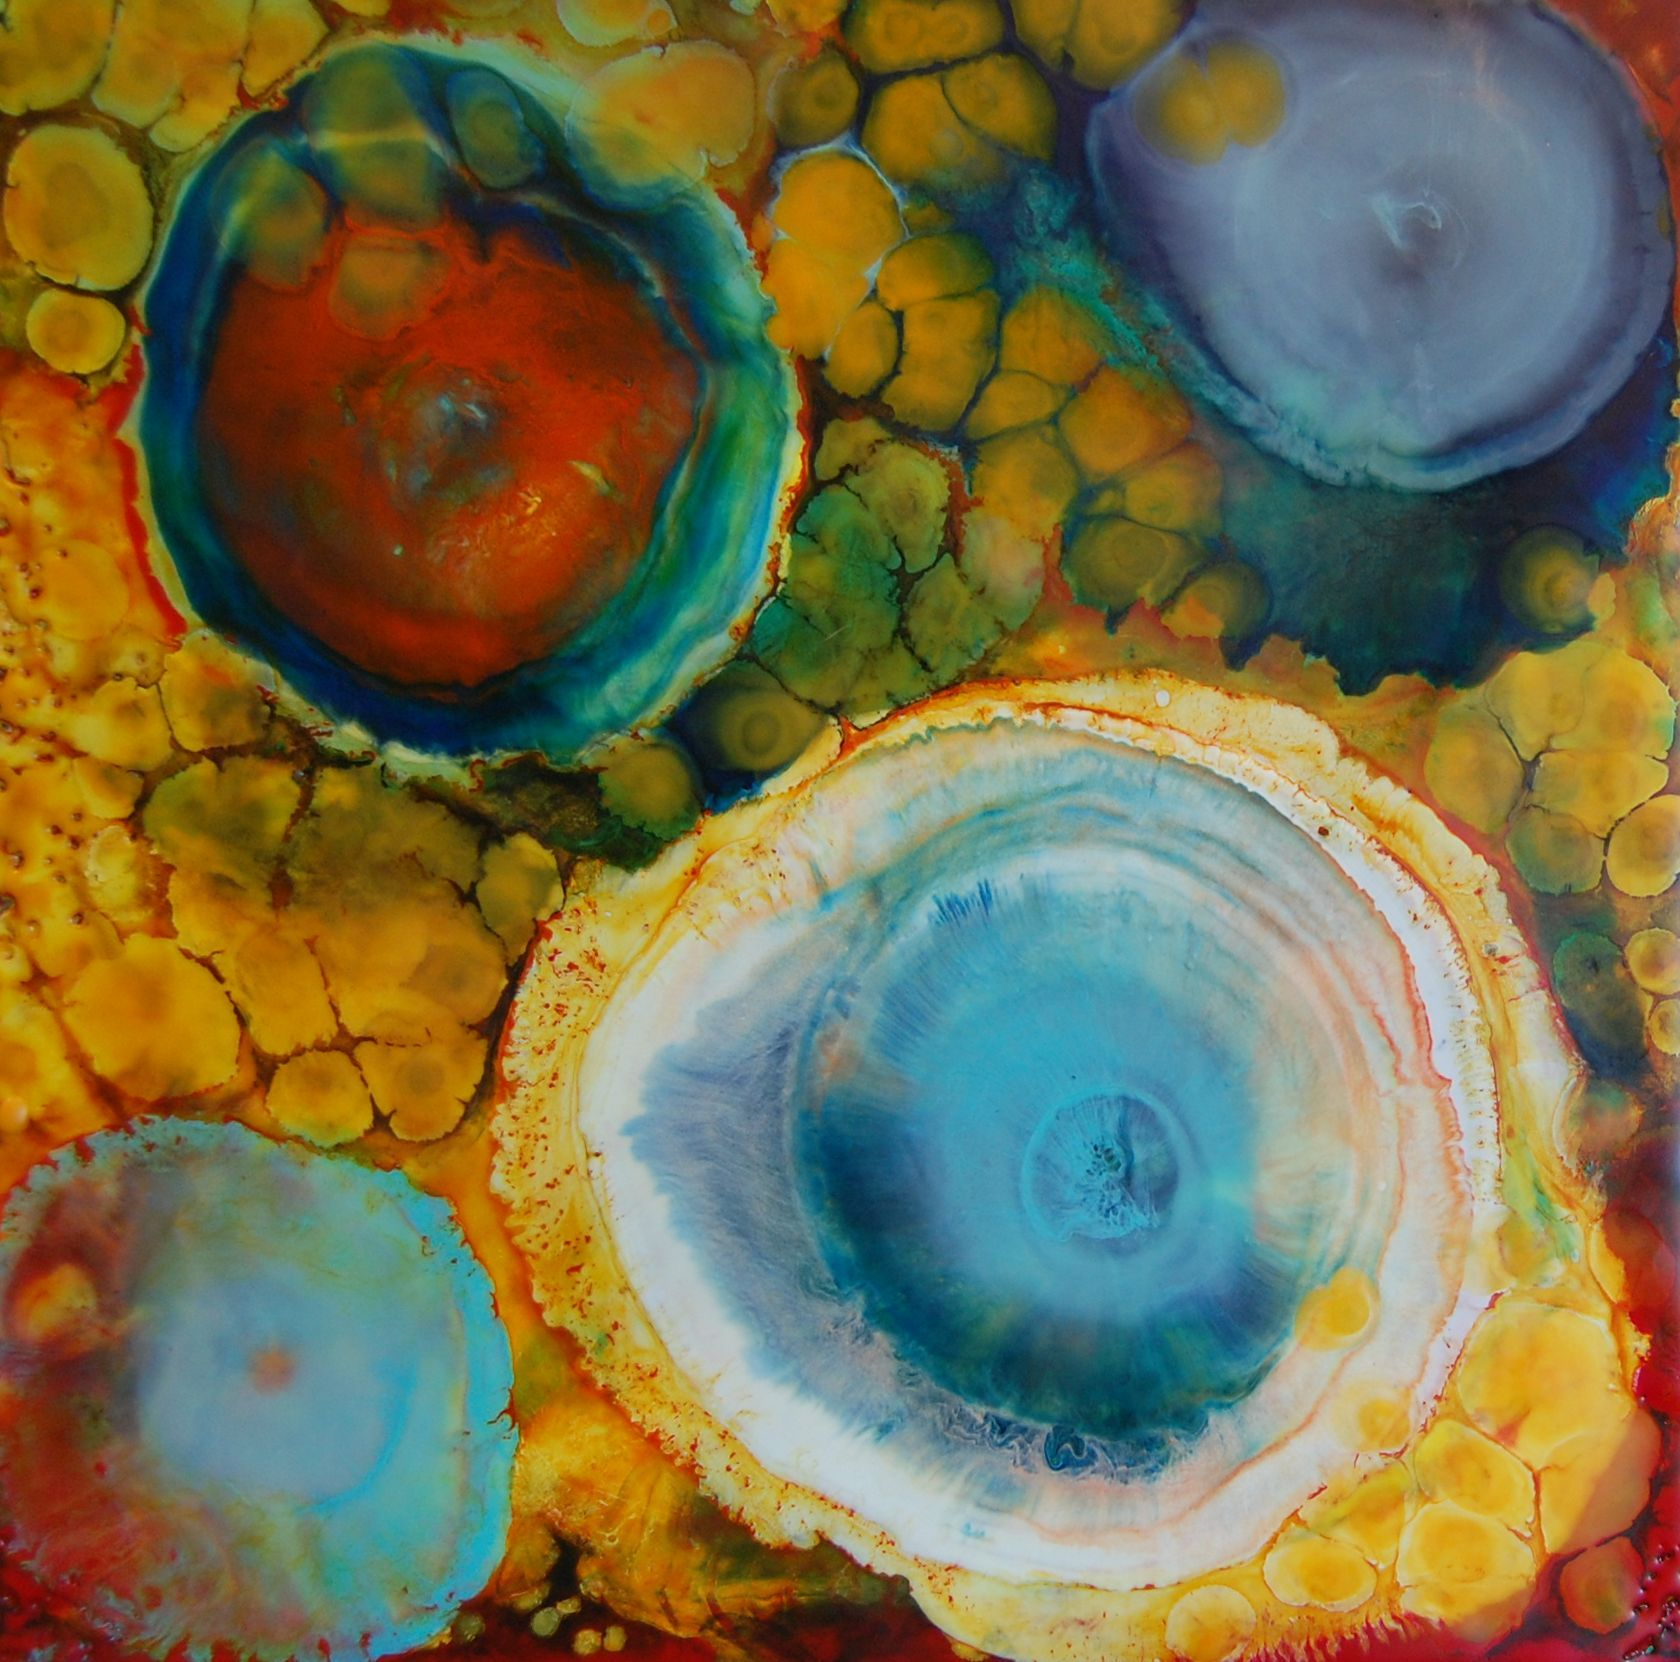 Evolution 12X12_ElizabethSchowachert_Encaustic.jpg